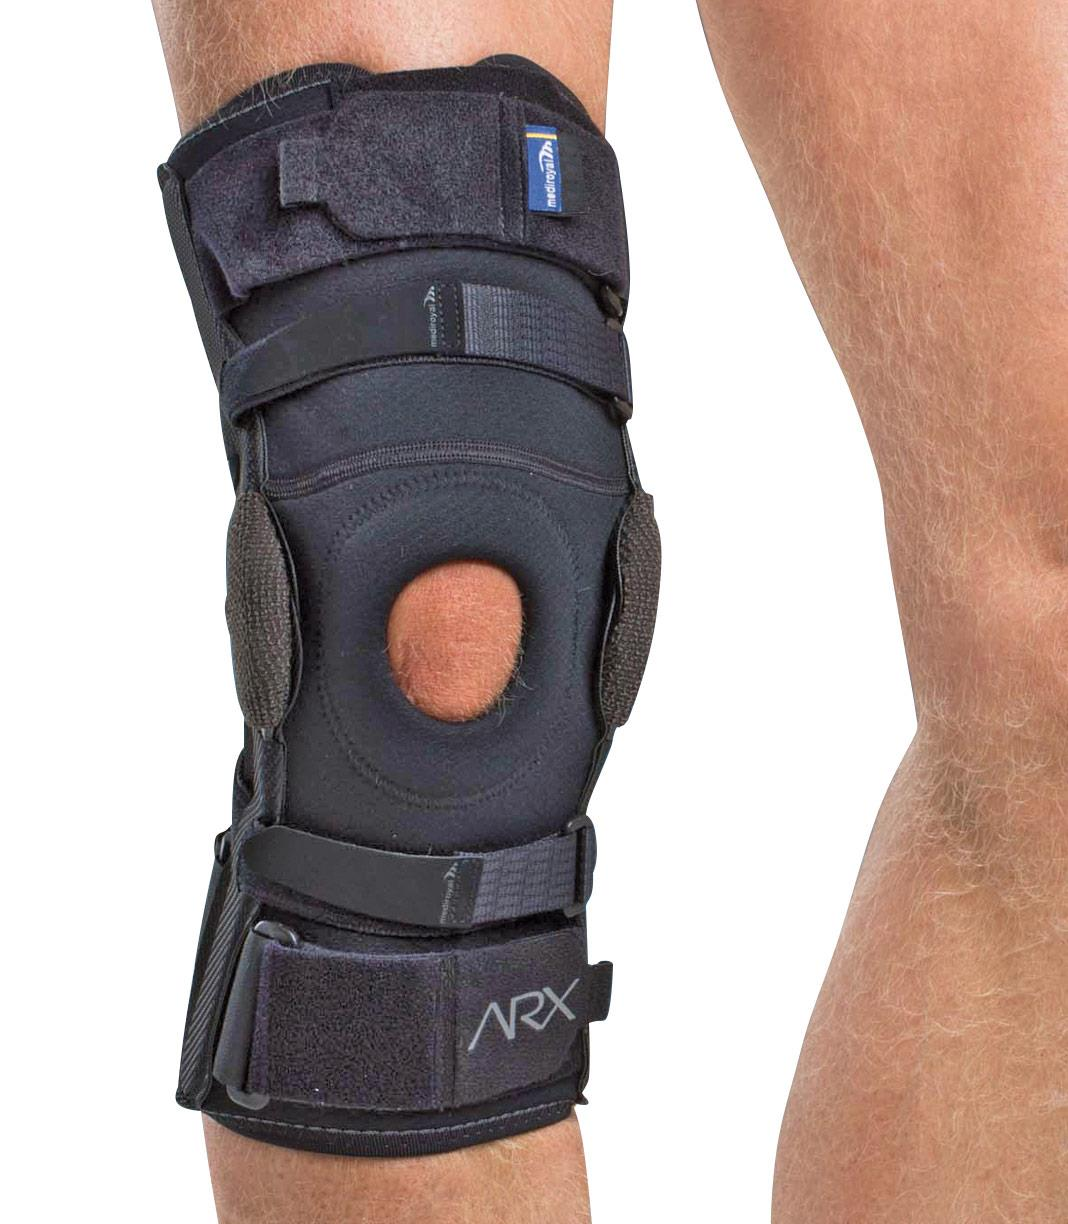 ARX331-LT/XXXL   MediRoyal ARX331 Venstre XXX-Large Patella Luxation Long